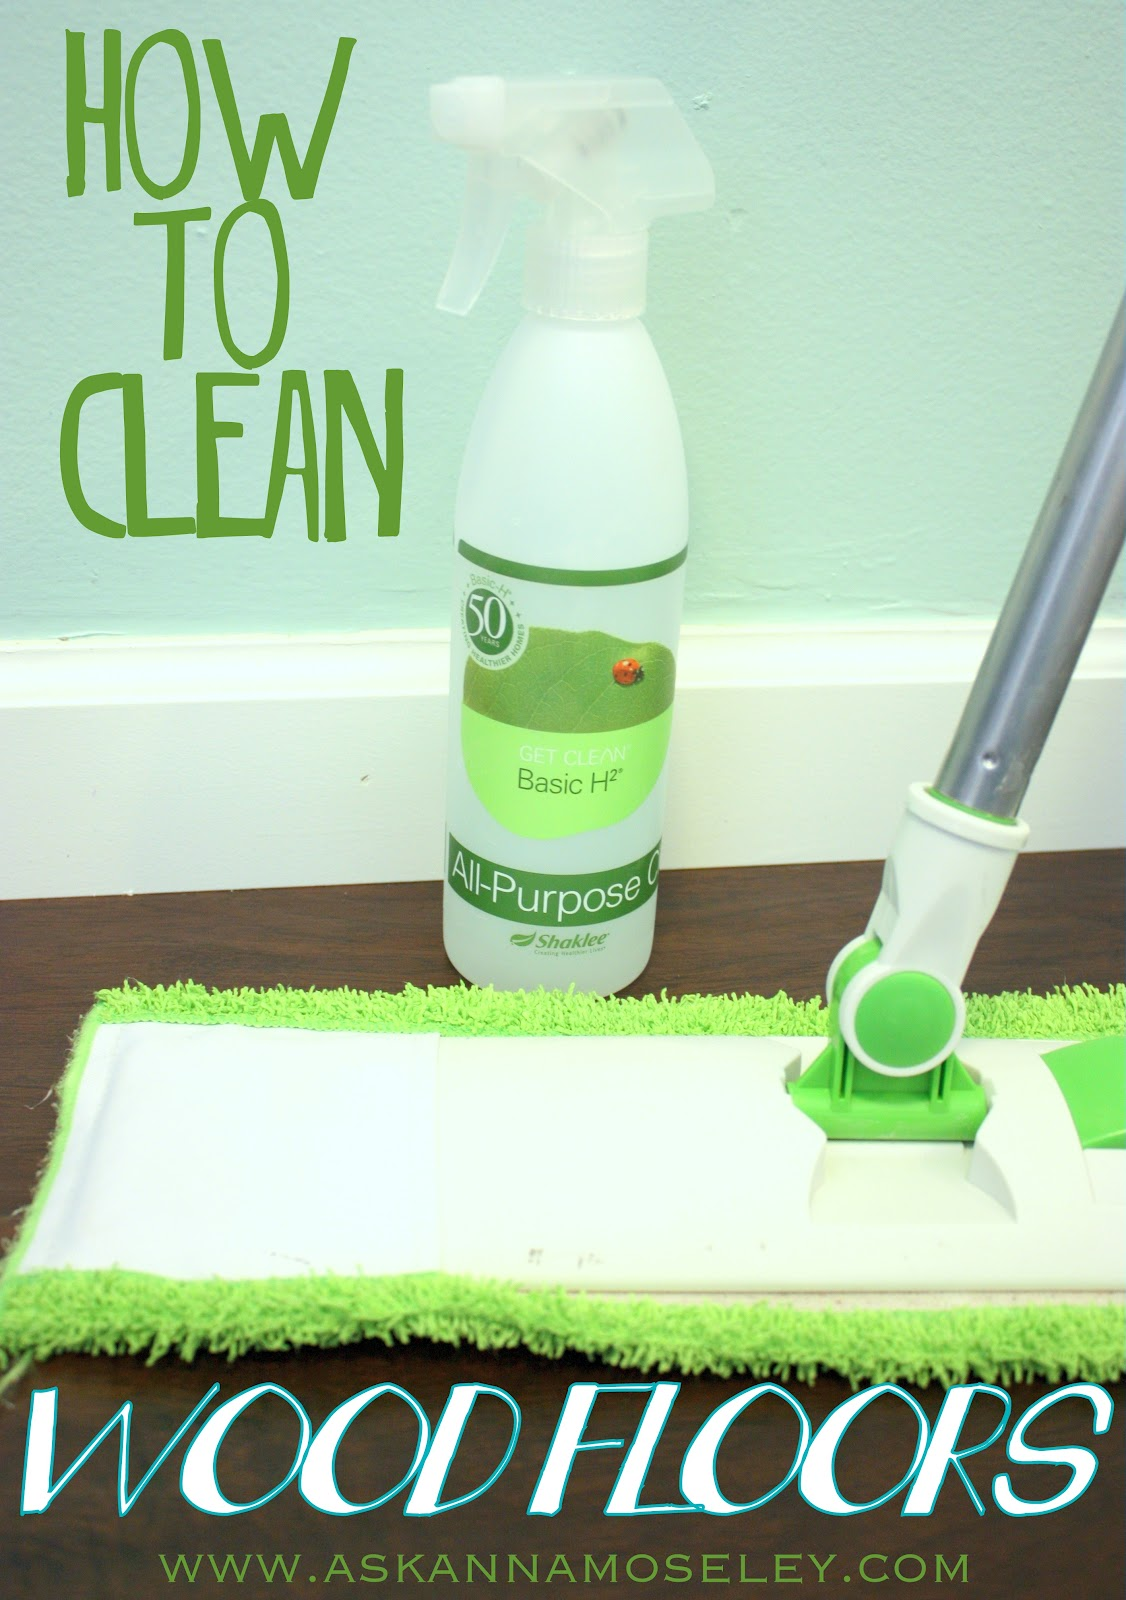 How to Clean Wood Floors without Chemicals Ask Anna